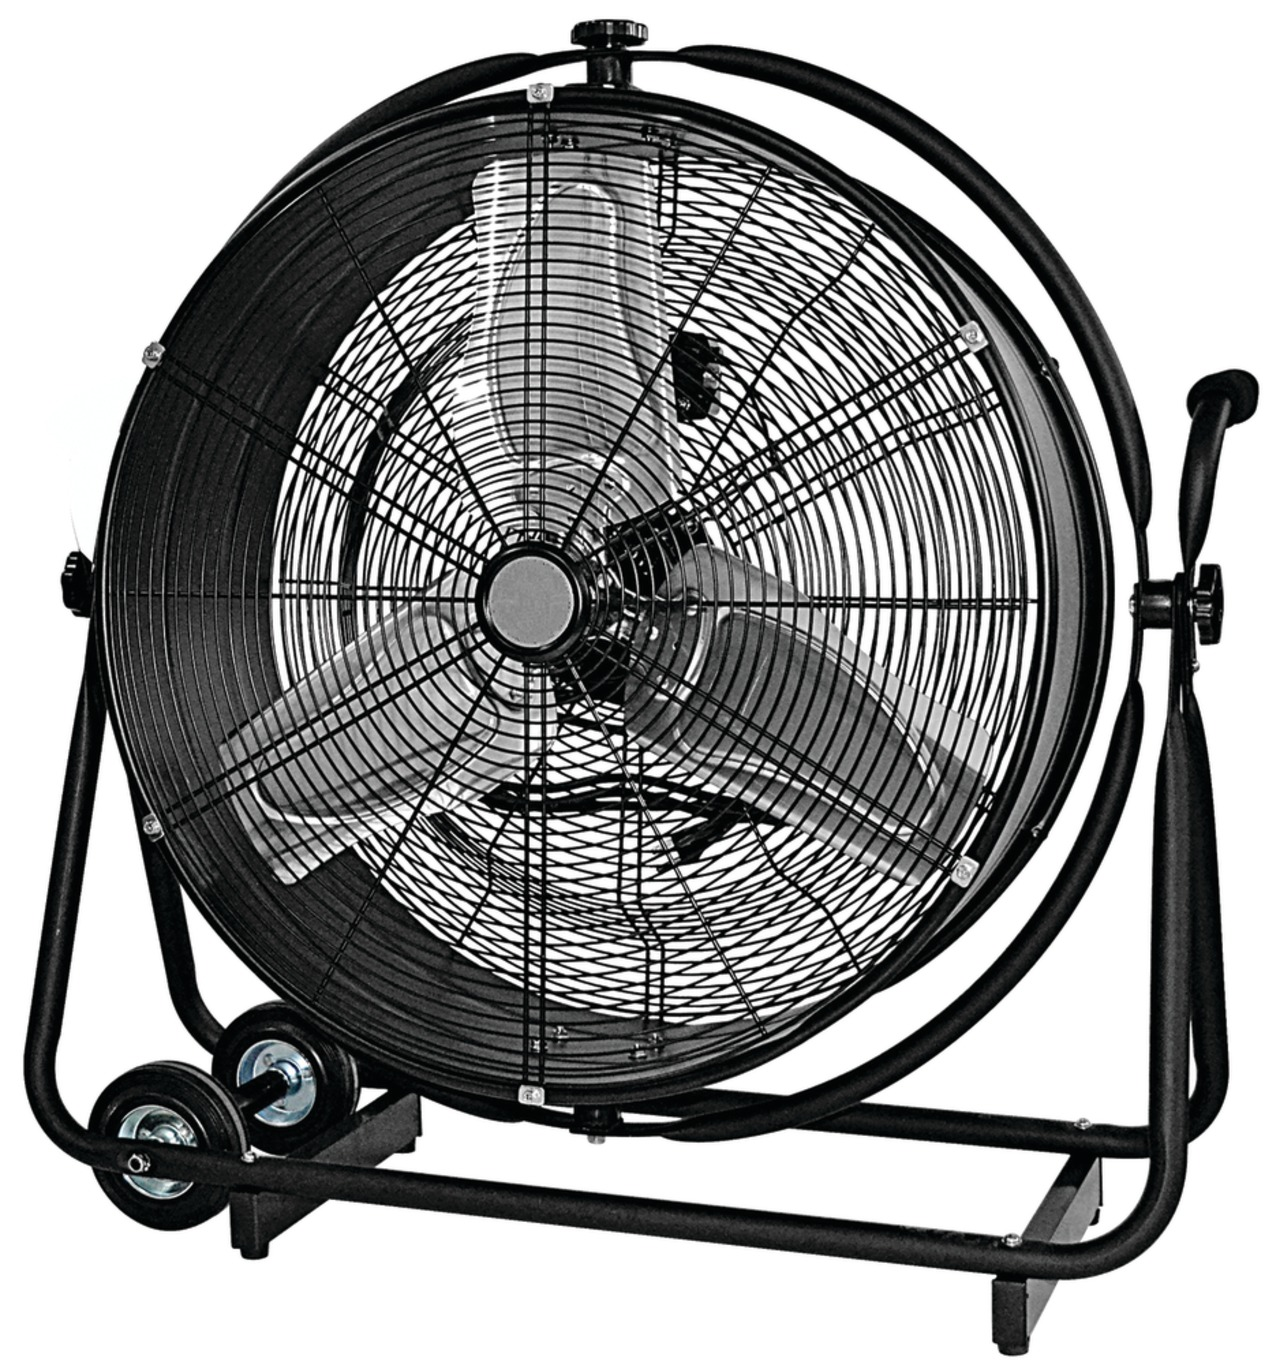 Tractor Supply County Line Fan Replacement Parts Best